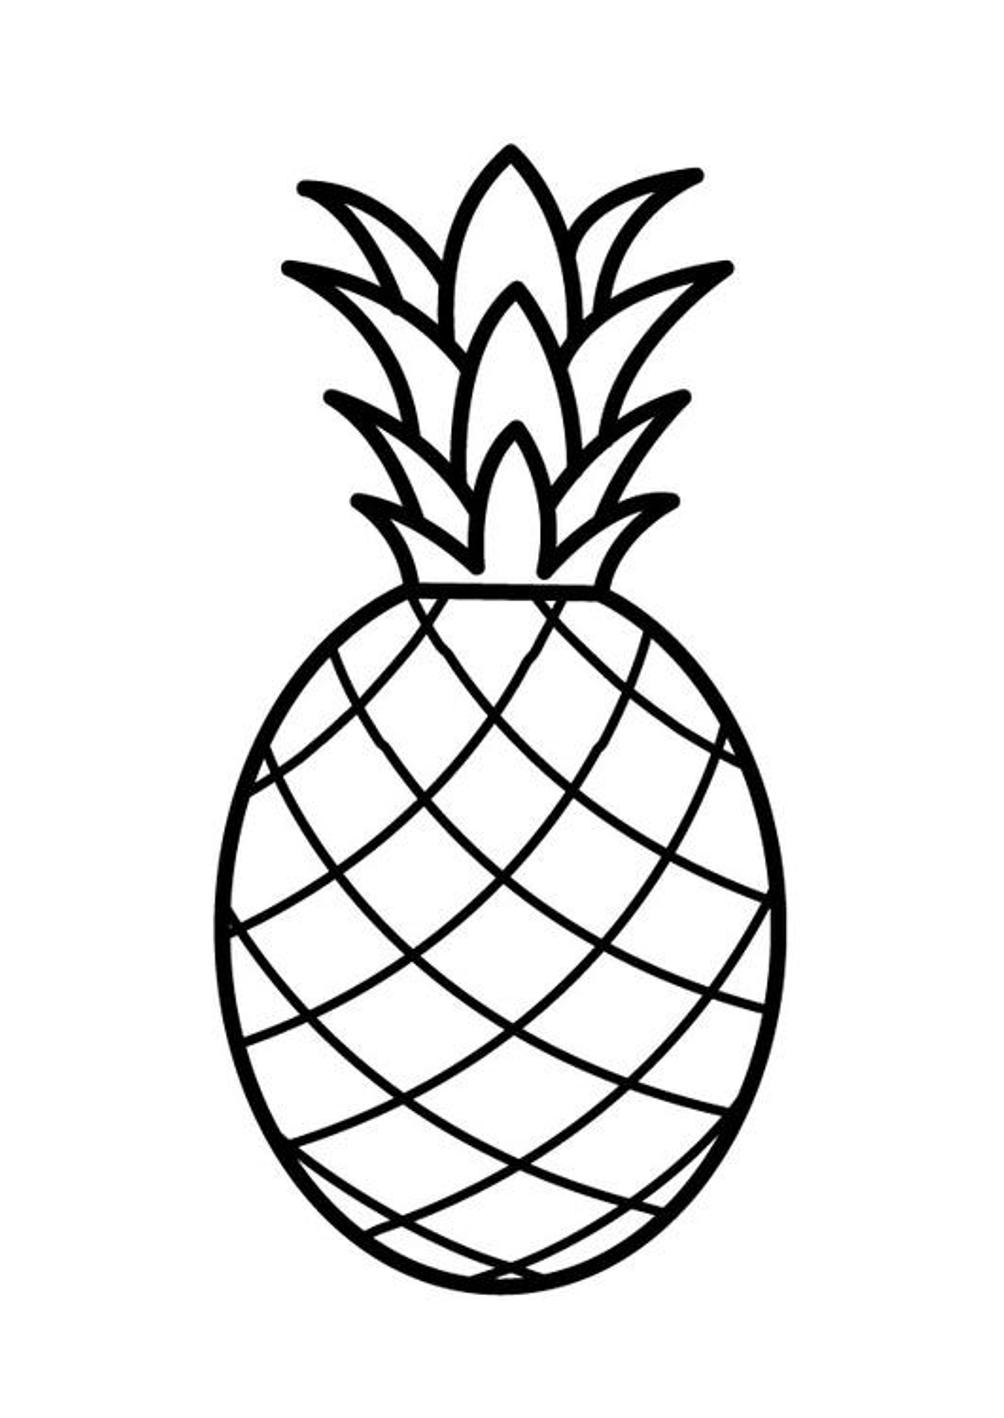 fruits images for coloring 55 fruit printable coloring pages fruit pineapple fruits fruits for images coloring